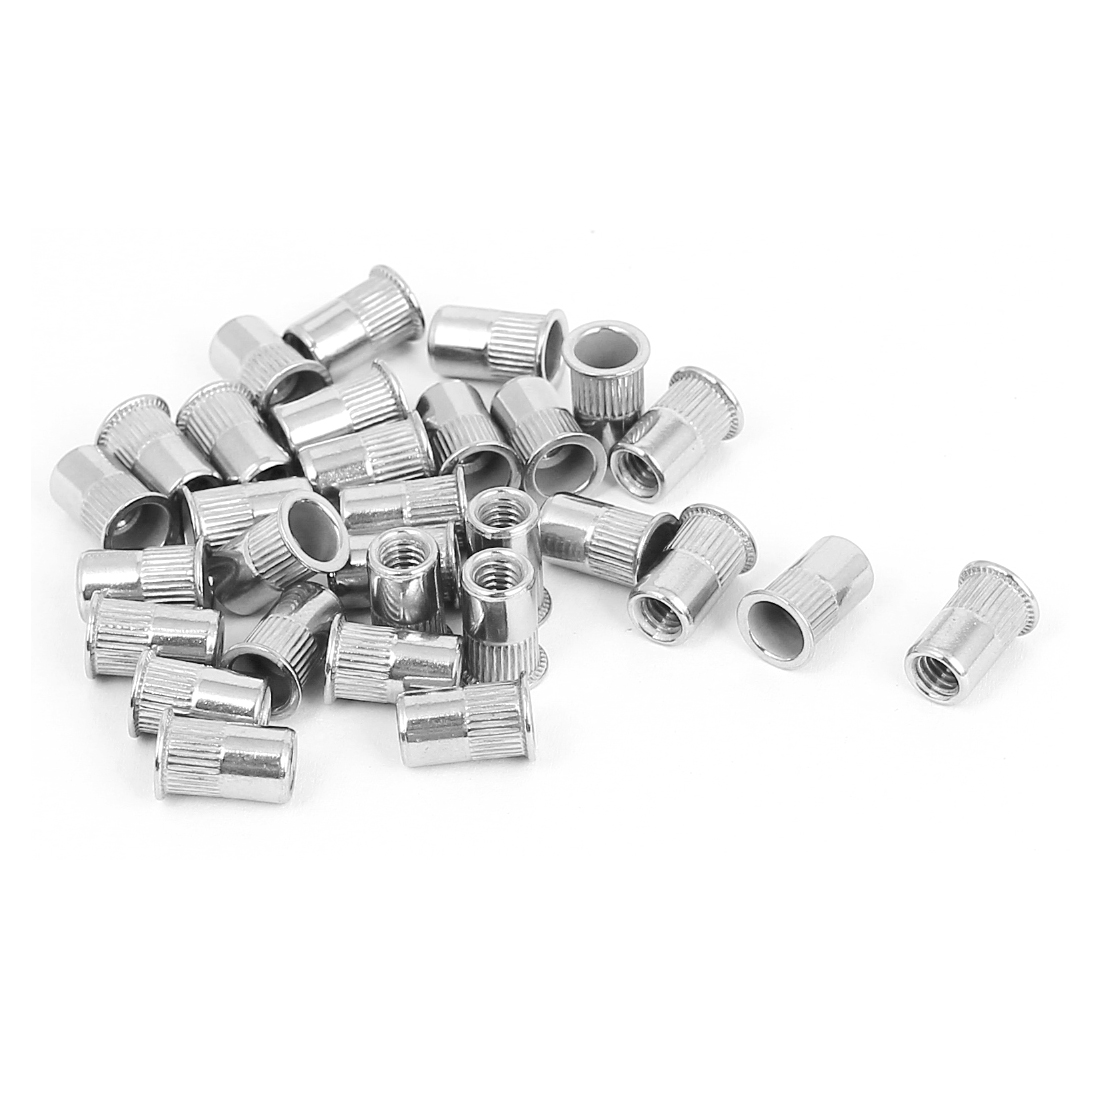 30pcs M4x10mm Stainless Steel Serrated Blind Rivet Nut Insert Nutserts